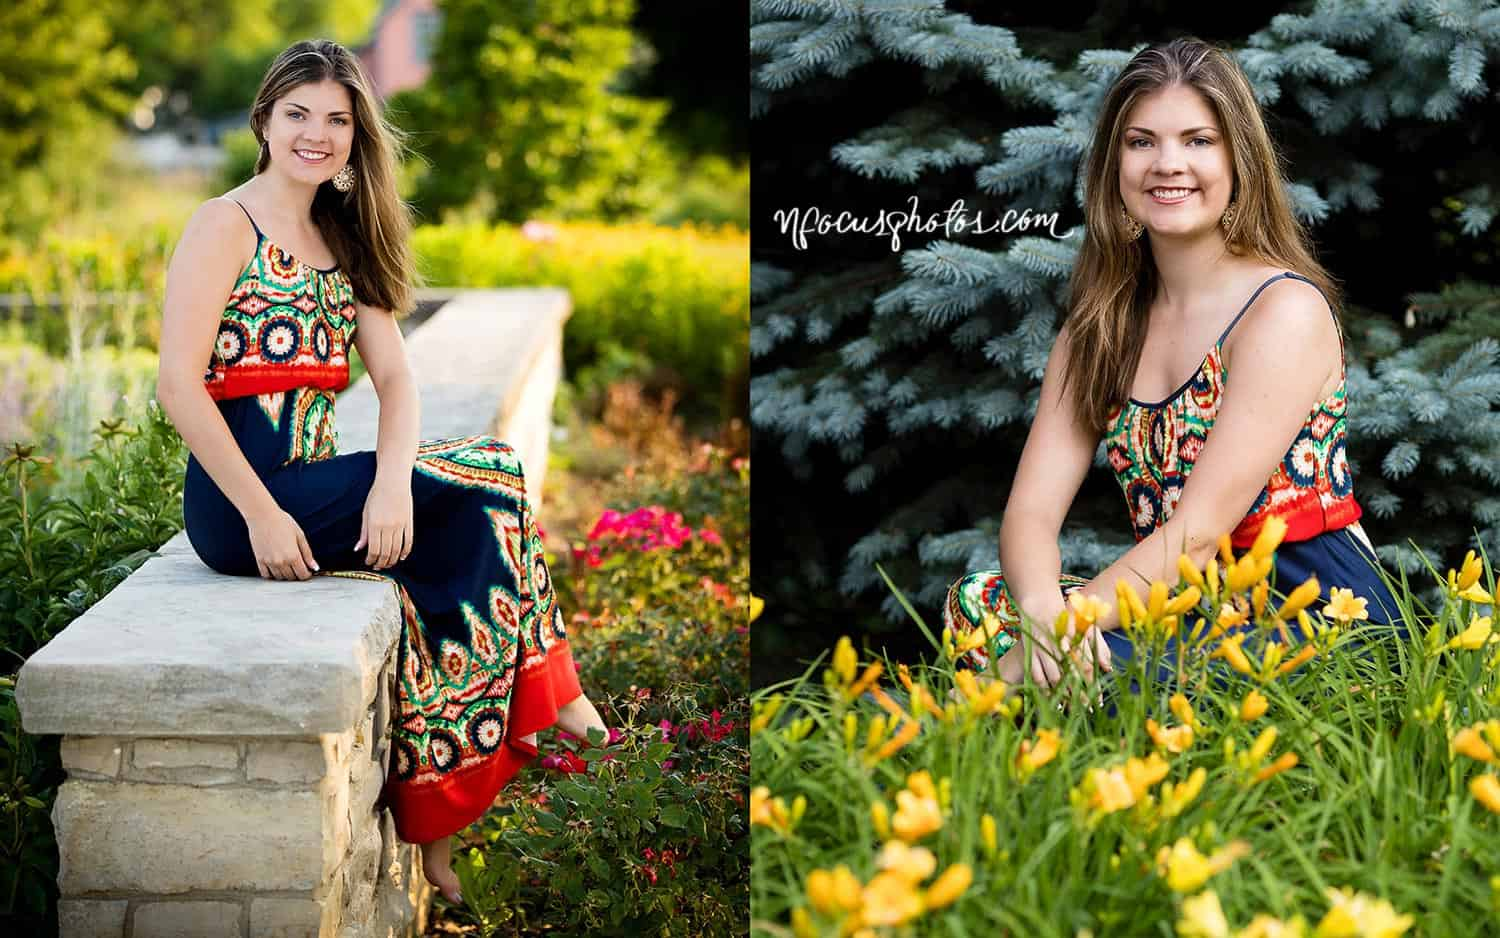 Algonquin Senior Pictures with nFocus Photos of Crystal Lake Illinois